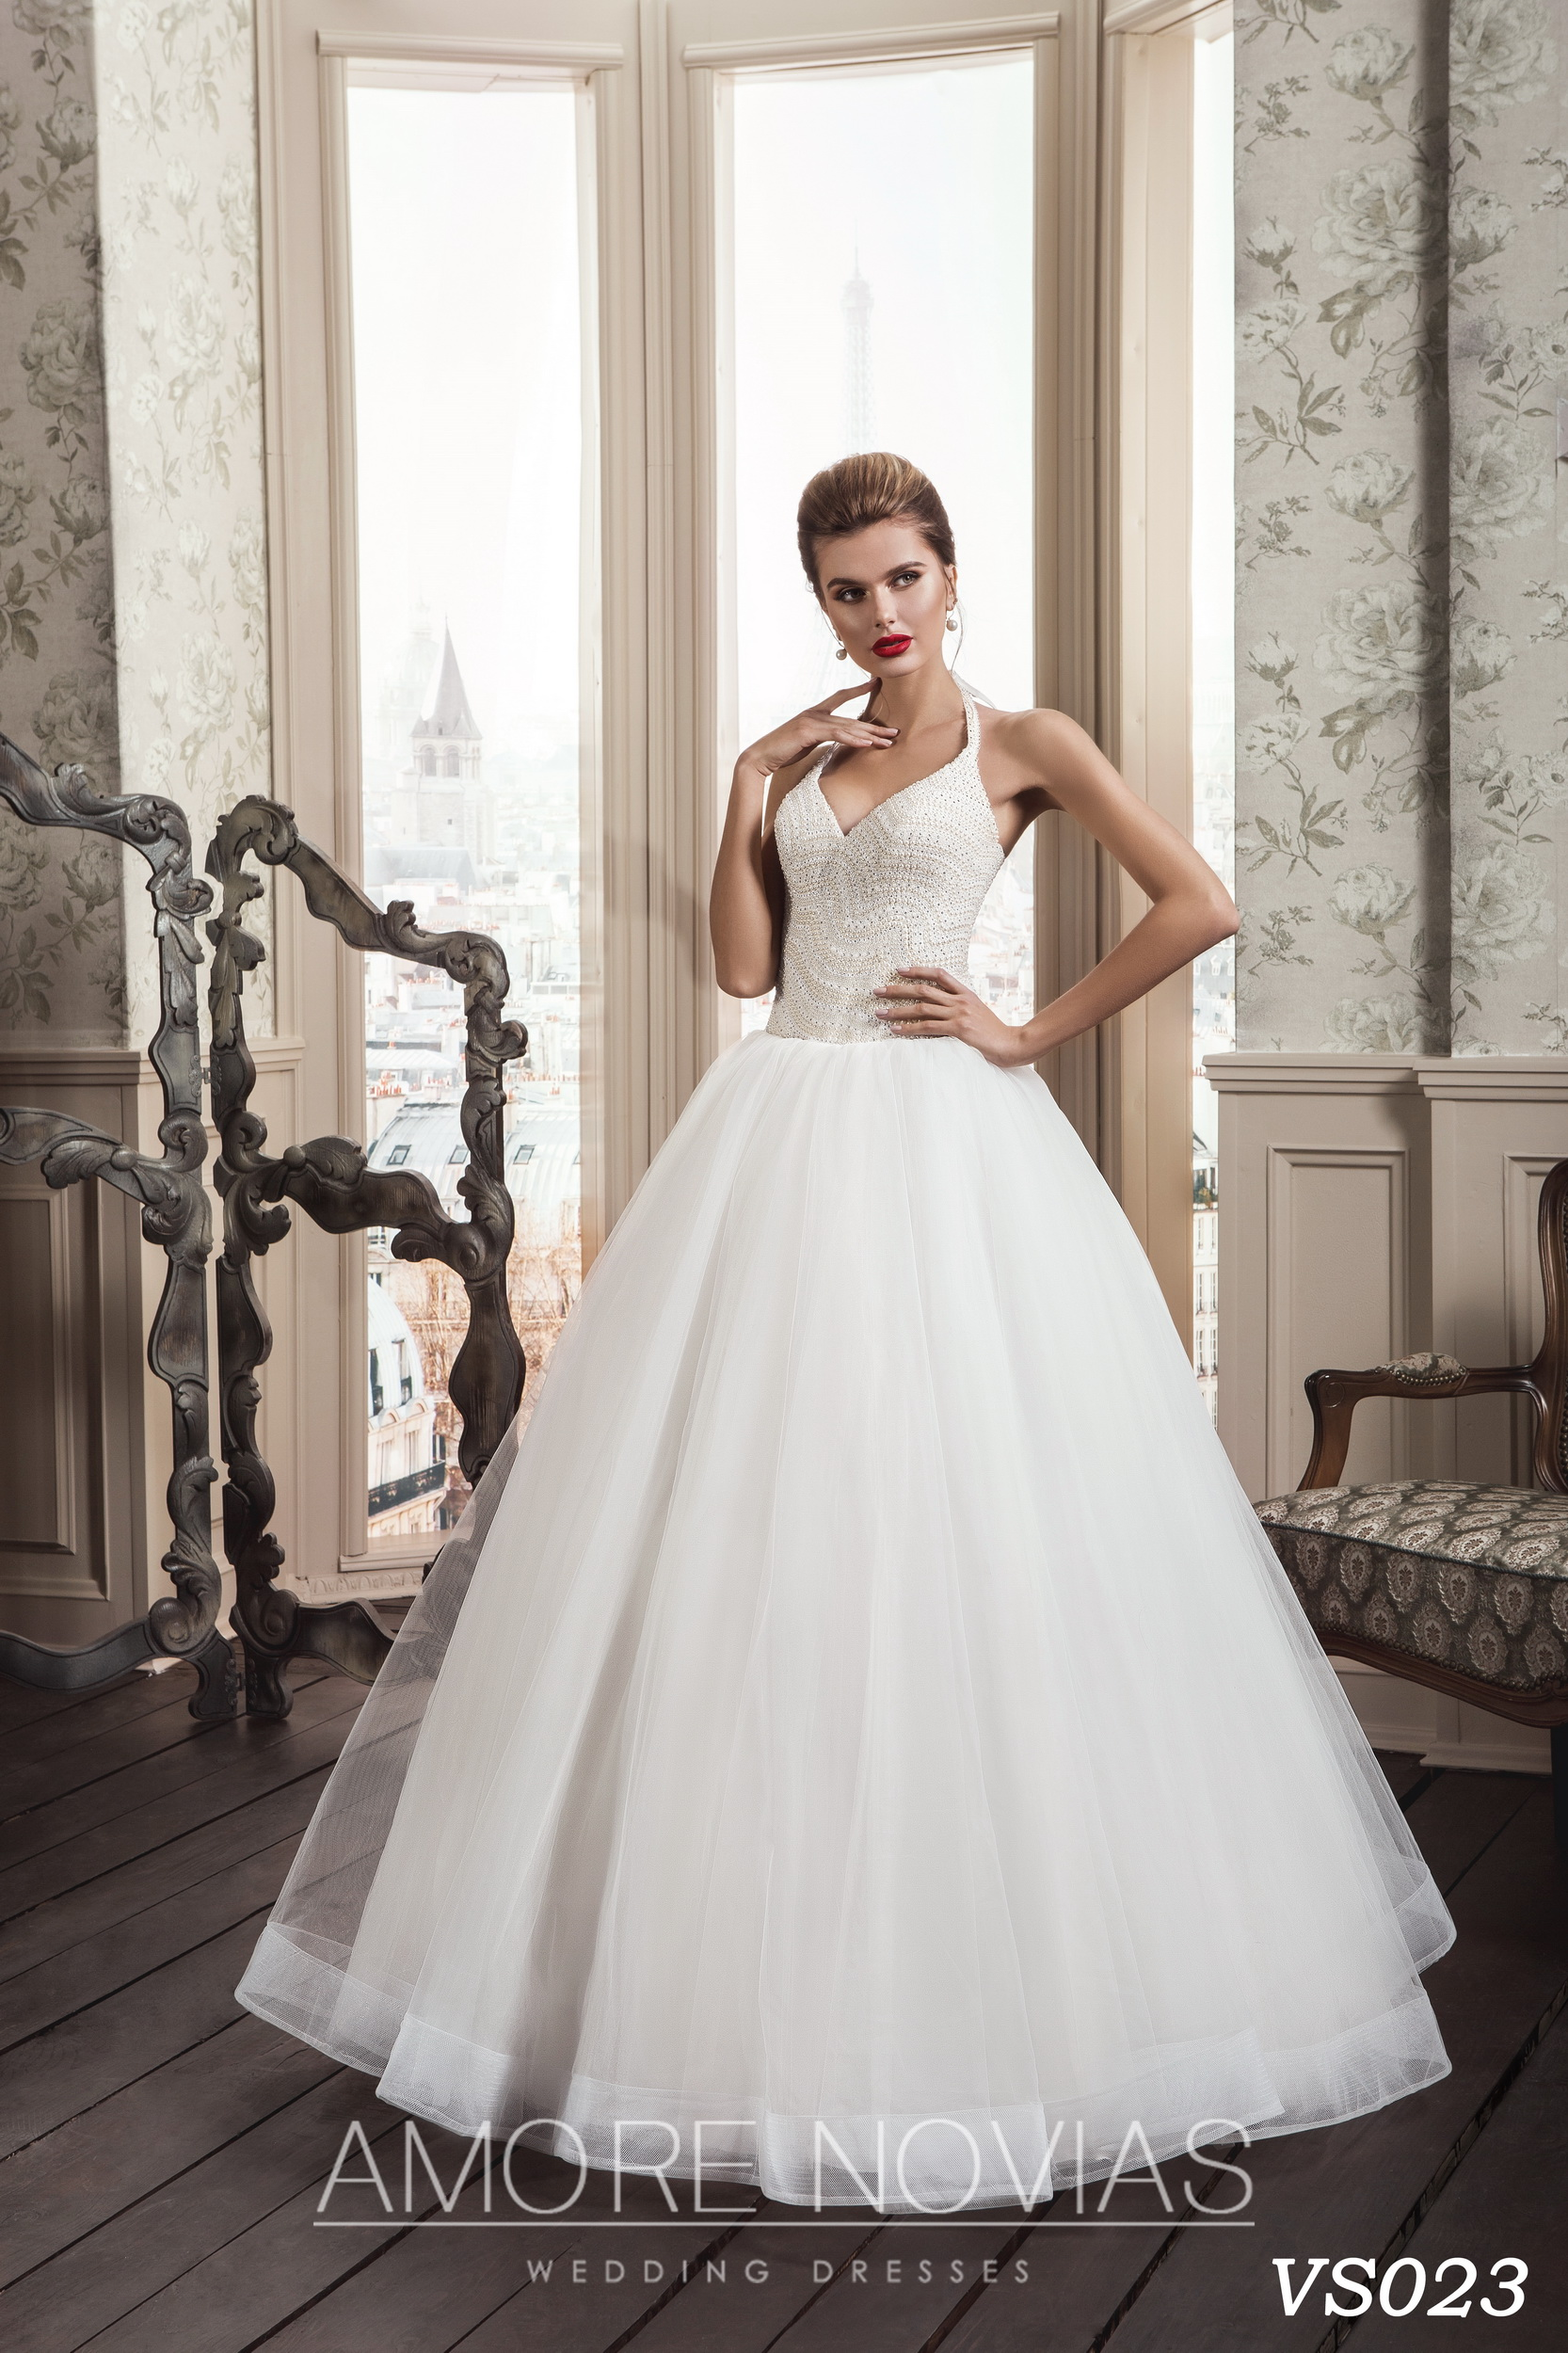 http://amore-novias.com/images/stories/virtuemart/product/vs023.jpg